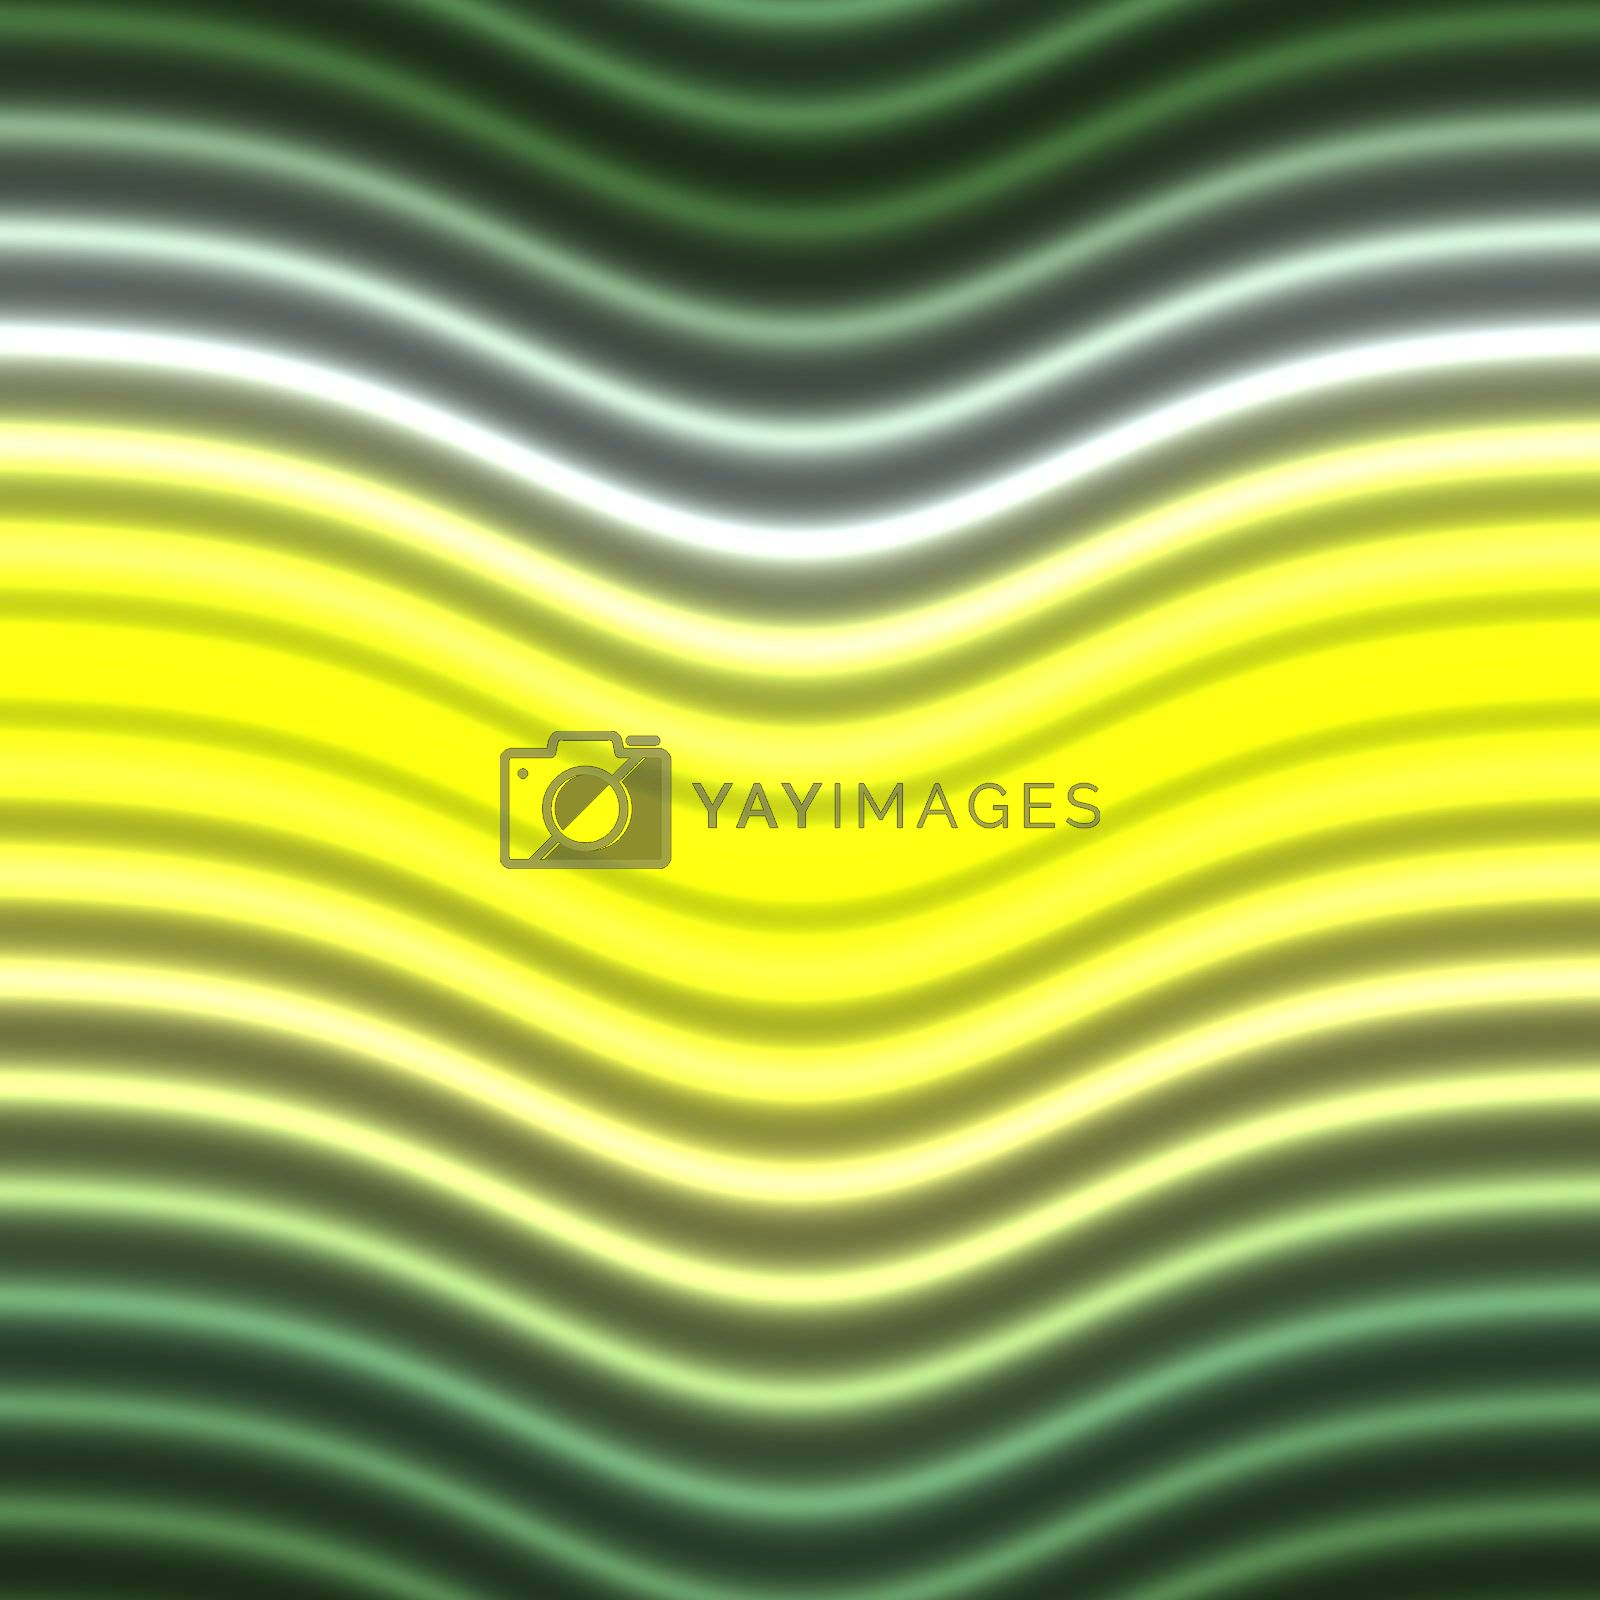 Colorful glowing neon lines abstract graphic design illustration